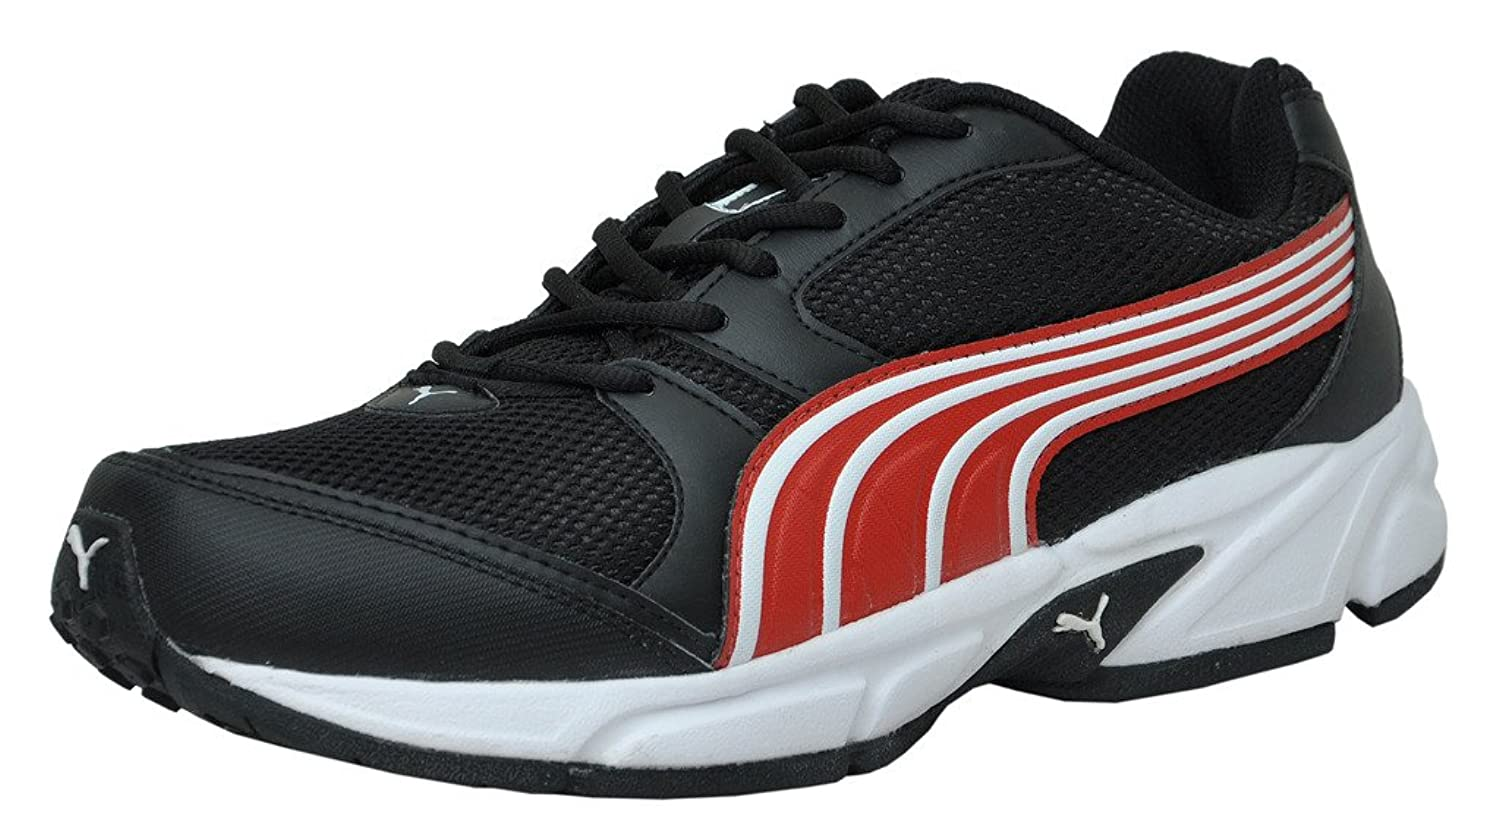 Puma Men's Strike II DP Black and High Risk Red Mesh Running Shoes - 6  UK/India (39 EU): Buy Online at Low Prices in India - Amazon.in